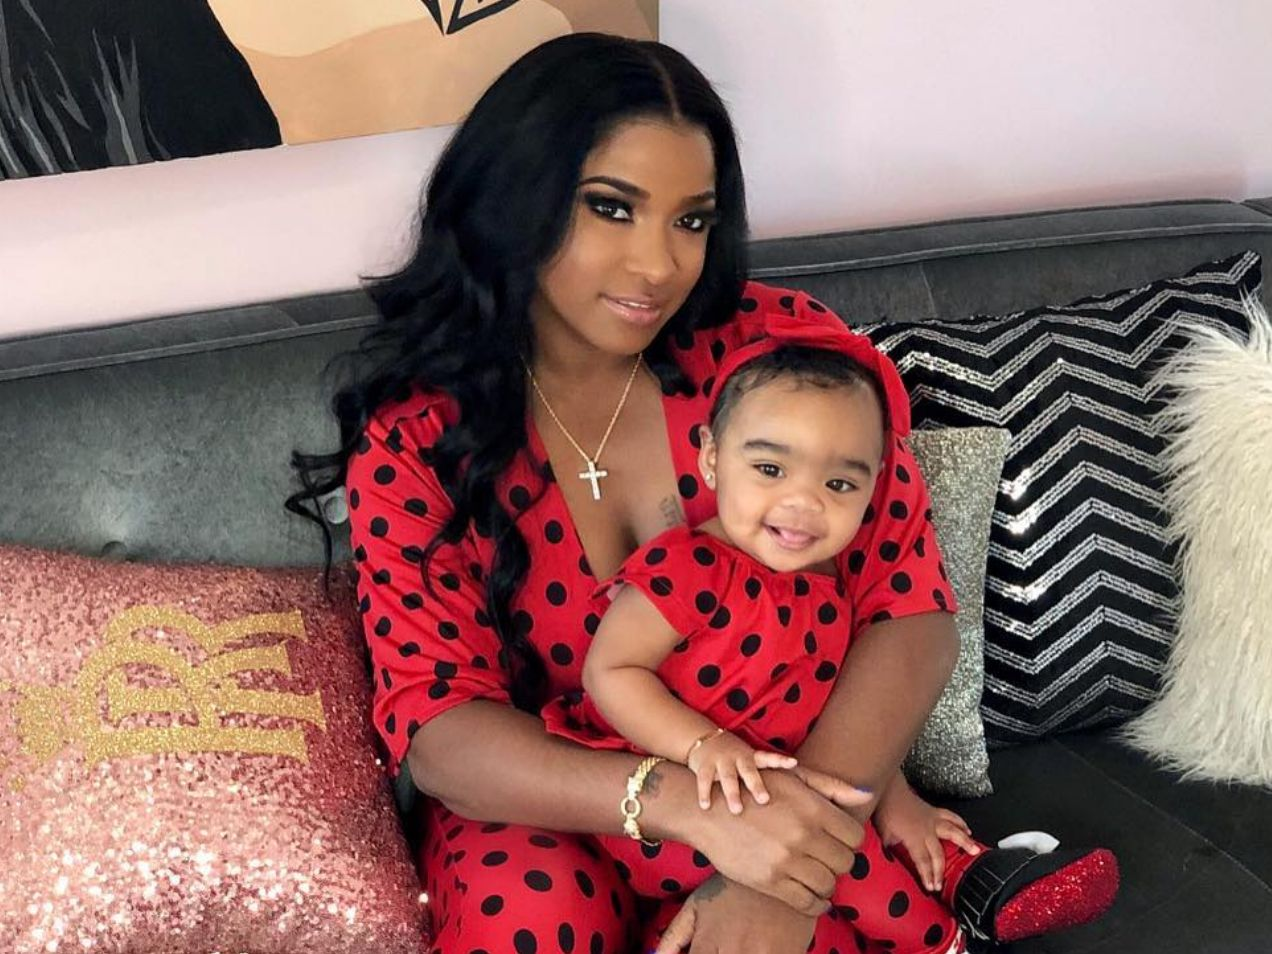 reign-rushing-is-killing-the-fashion-game-in-the-latest-photo-her-mom-toya-wright-shared-with-fans